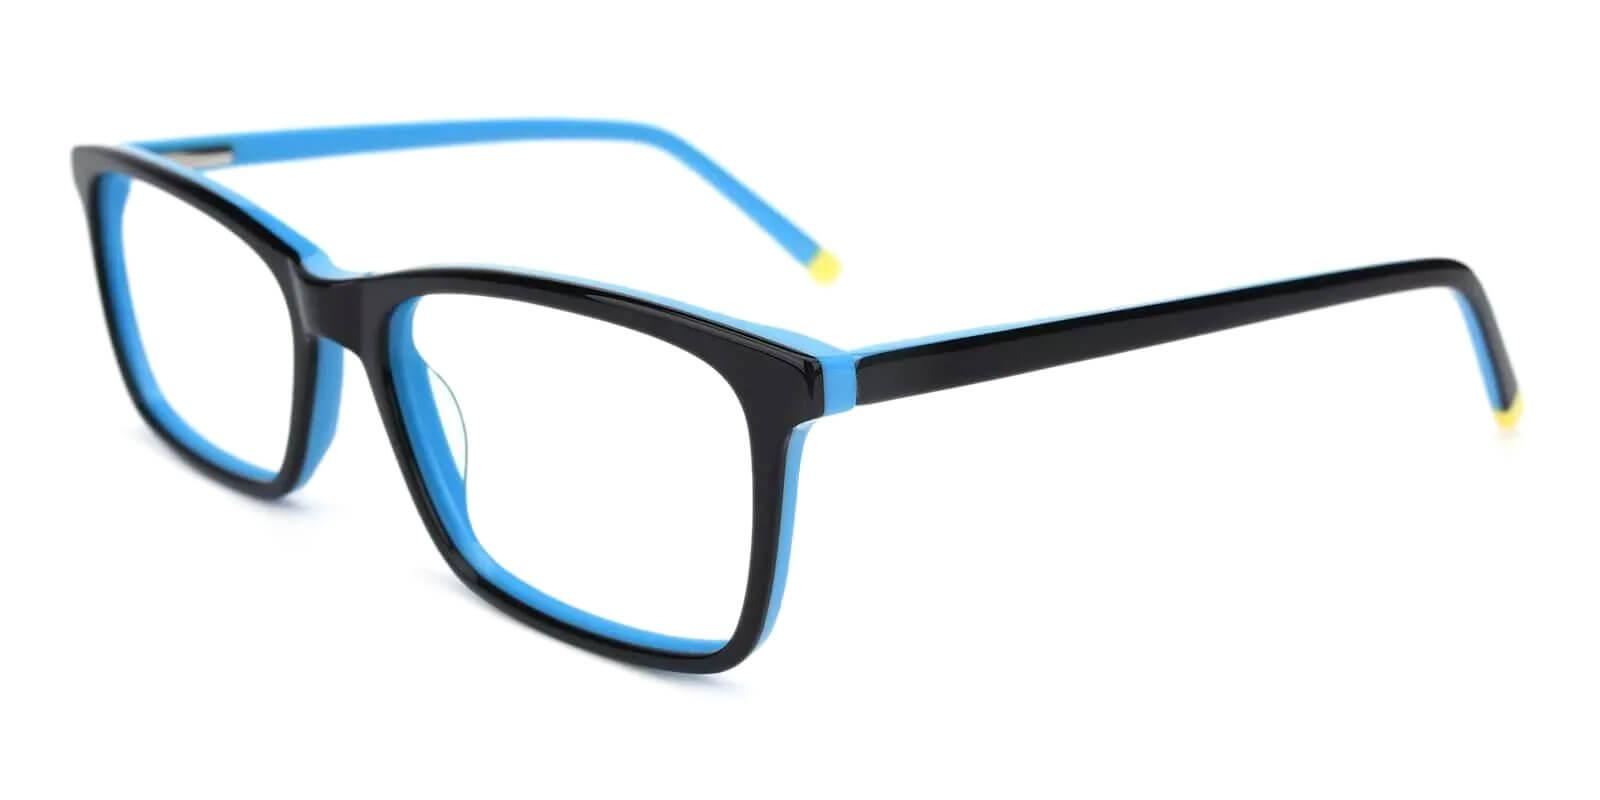 Quasqueton Blue Acetate Eyeglasses , SpringHinges , UniversalBridgeFit Frames from ABBE Glasses